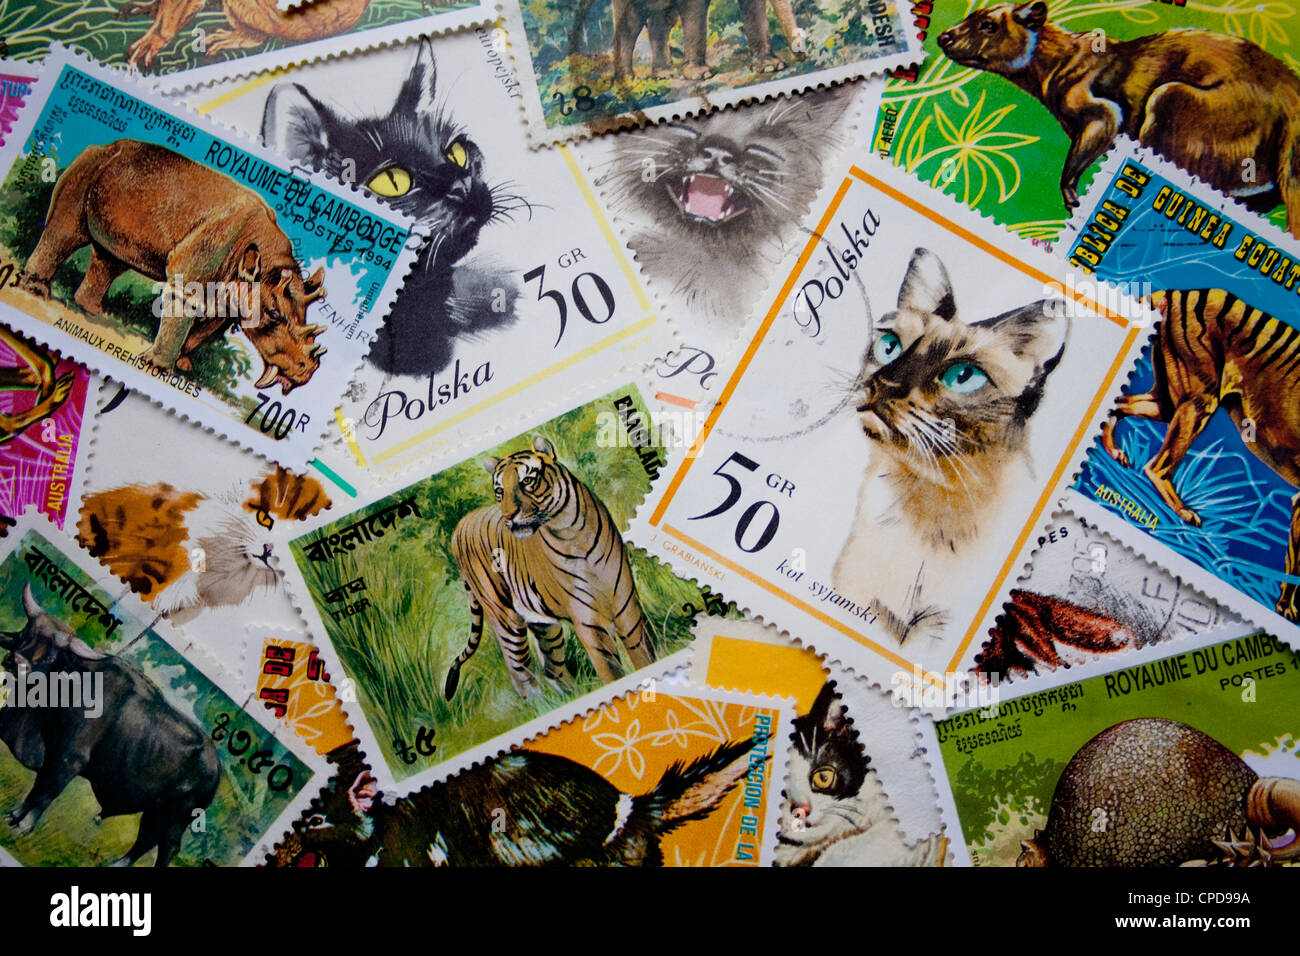 A collection of animal stamps from different countries, such as Poland, Equatorial Guinea, Cambodia, Bangladesh - Stock Image